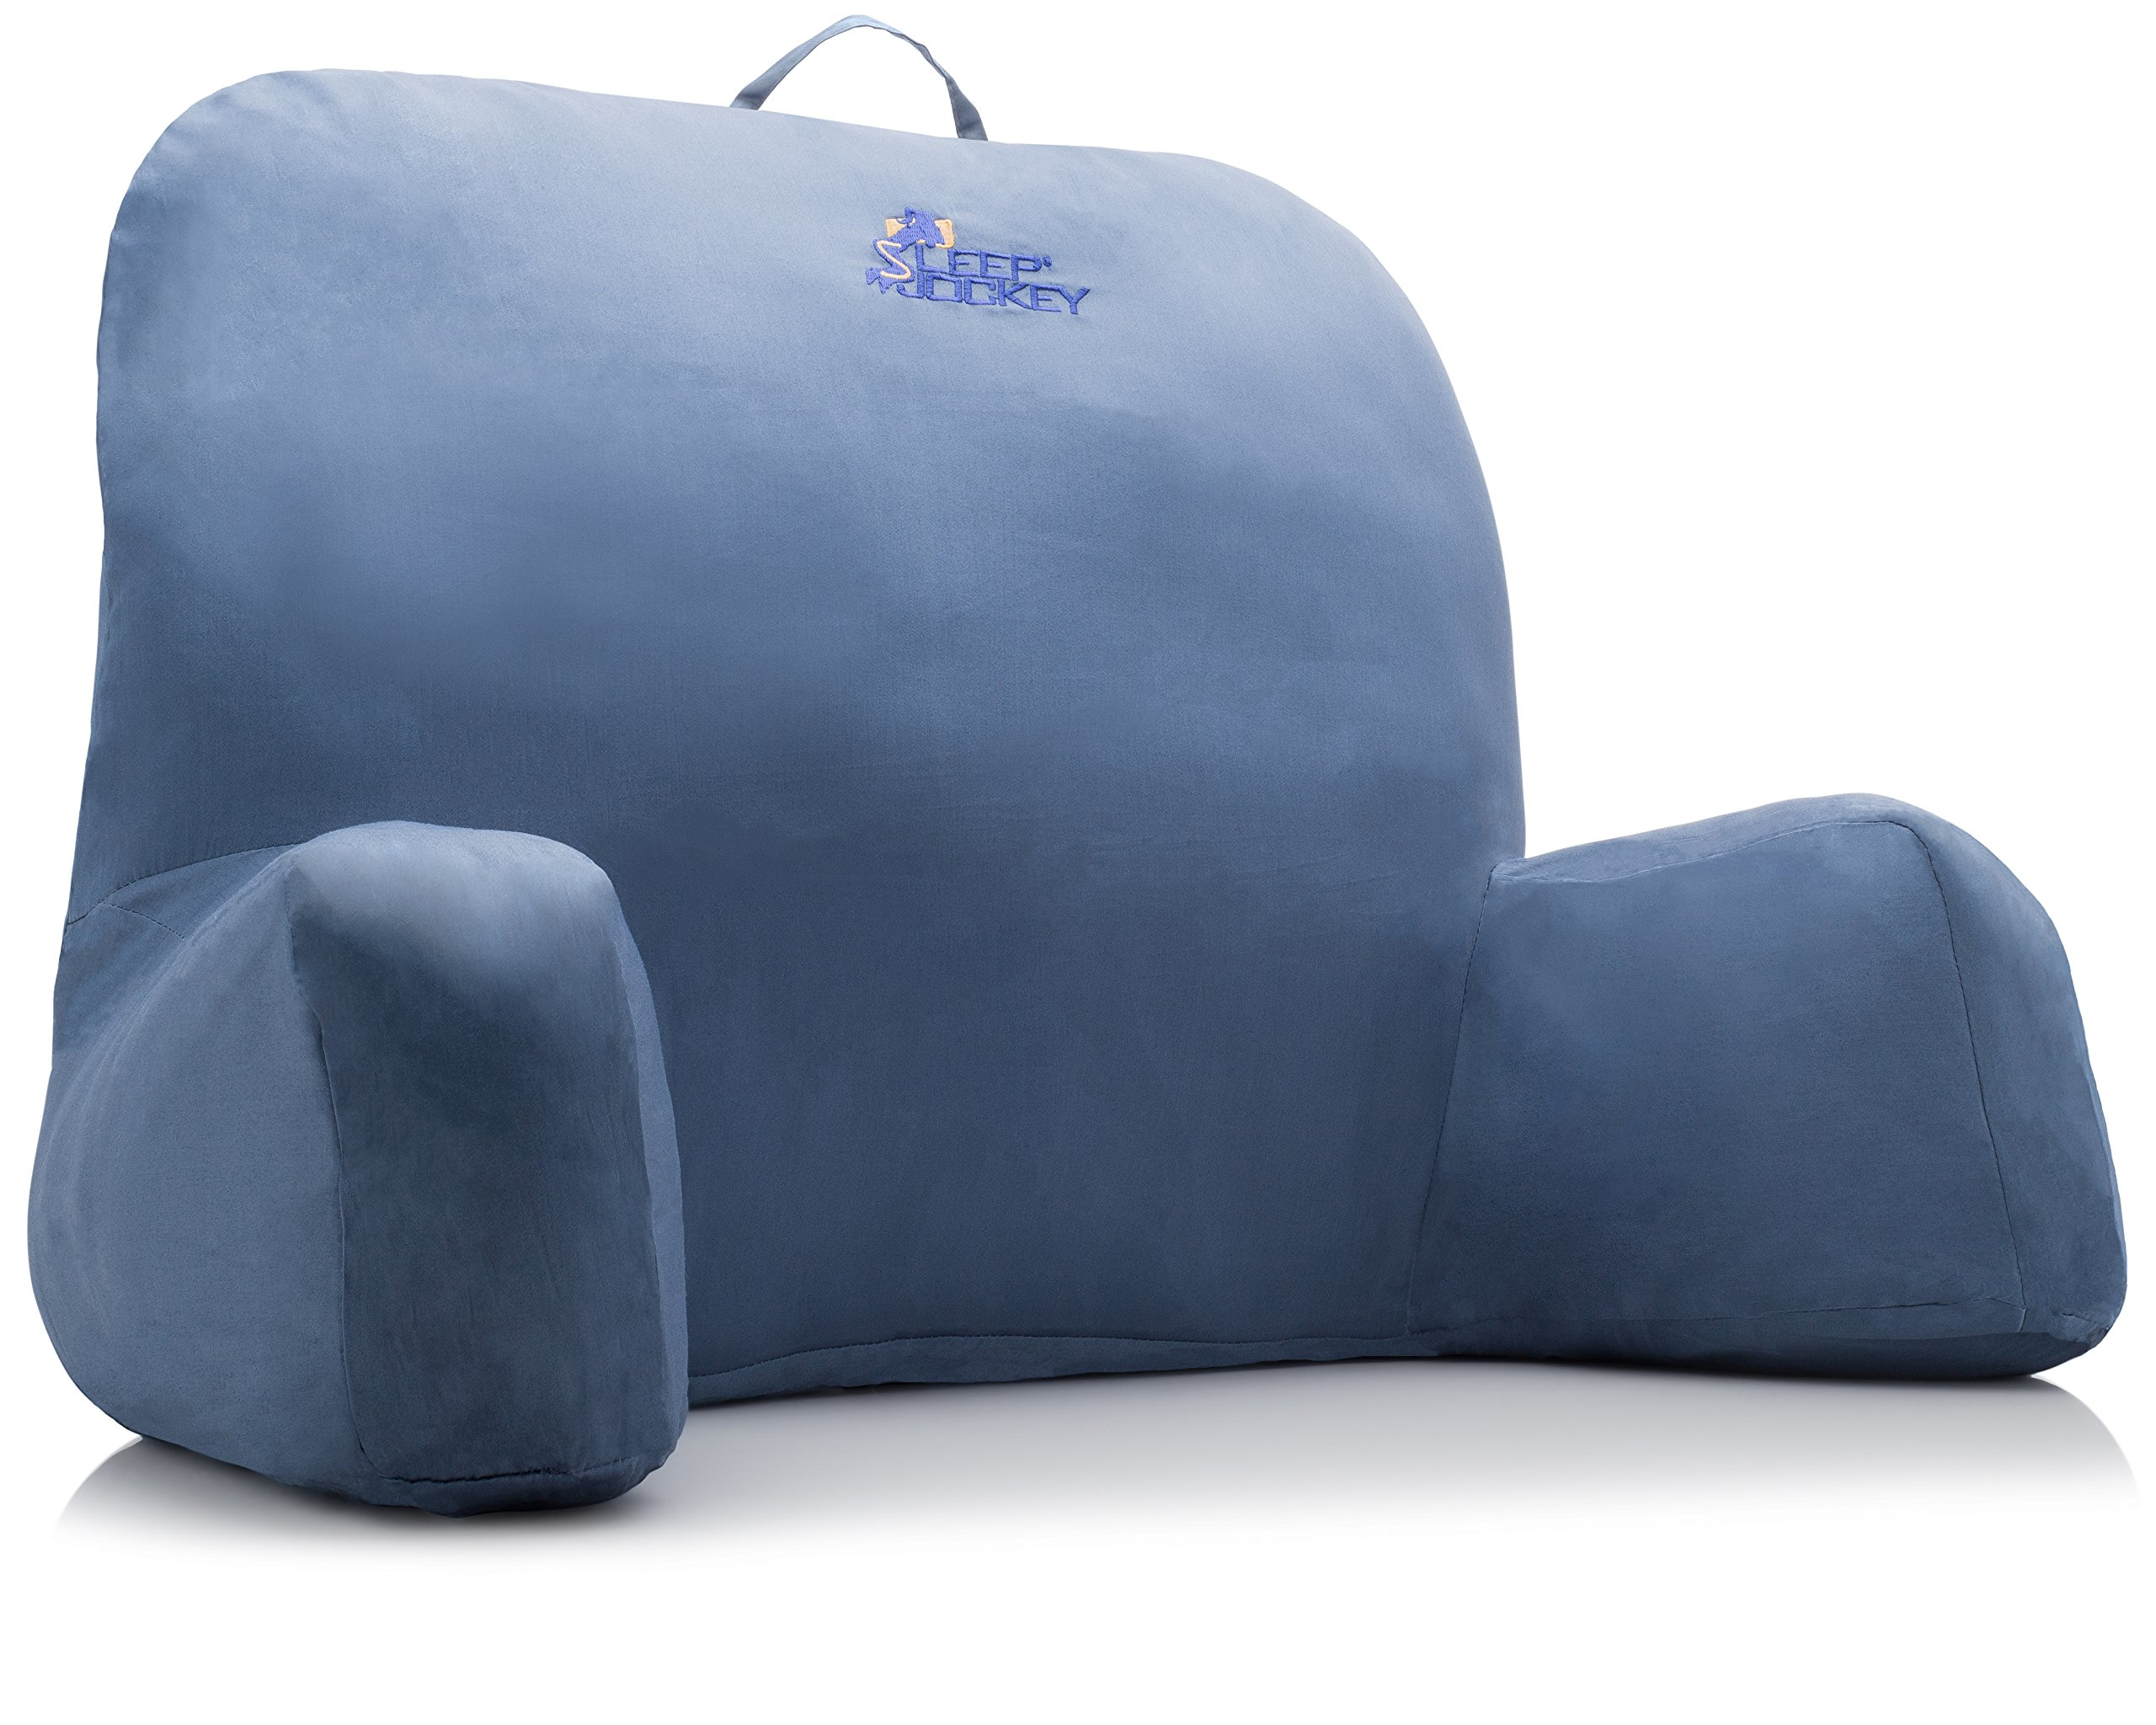 Bed Reading Pillow - Premium Therapeutic Grade Bed Rest & Support Pillow - Super Soft (Not Overstuffed) Egyptian Cotton (Blue)